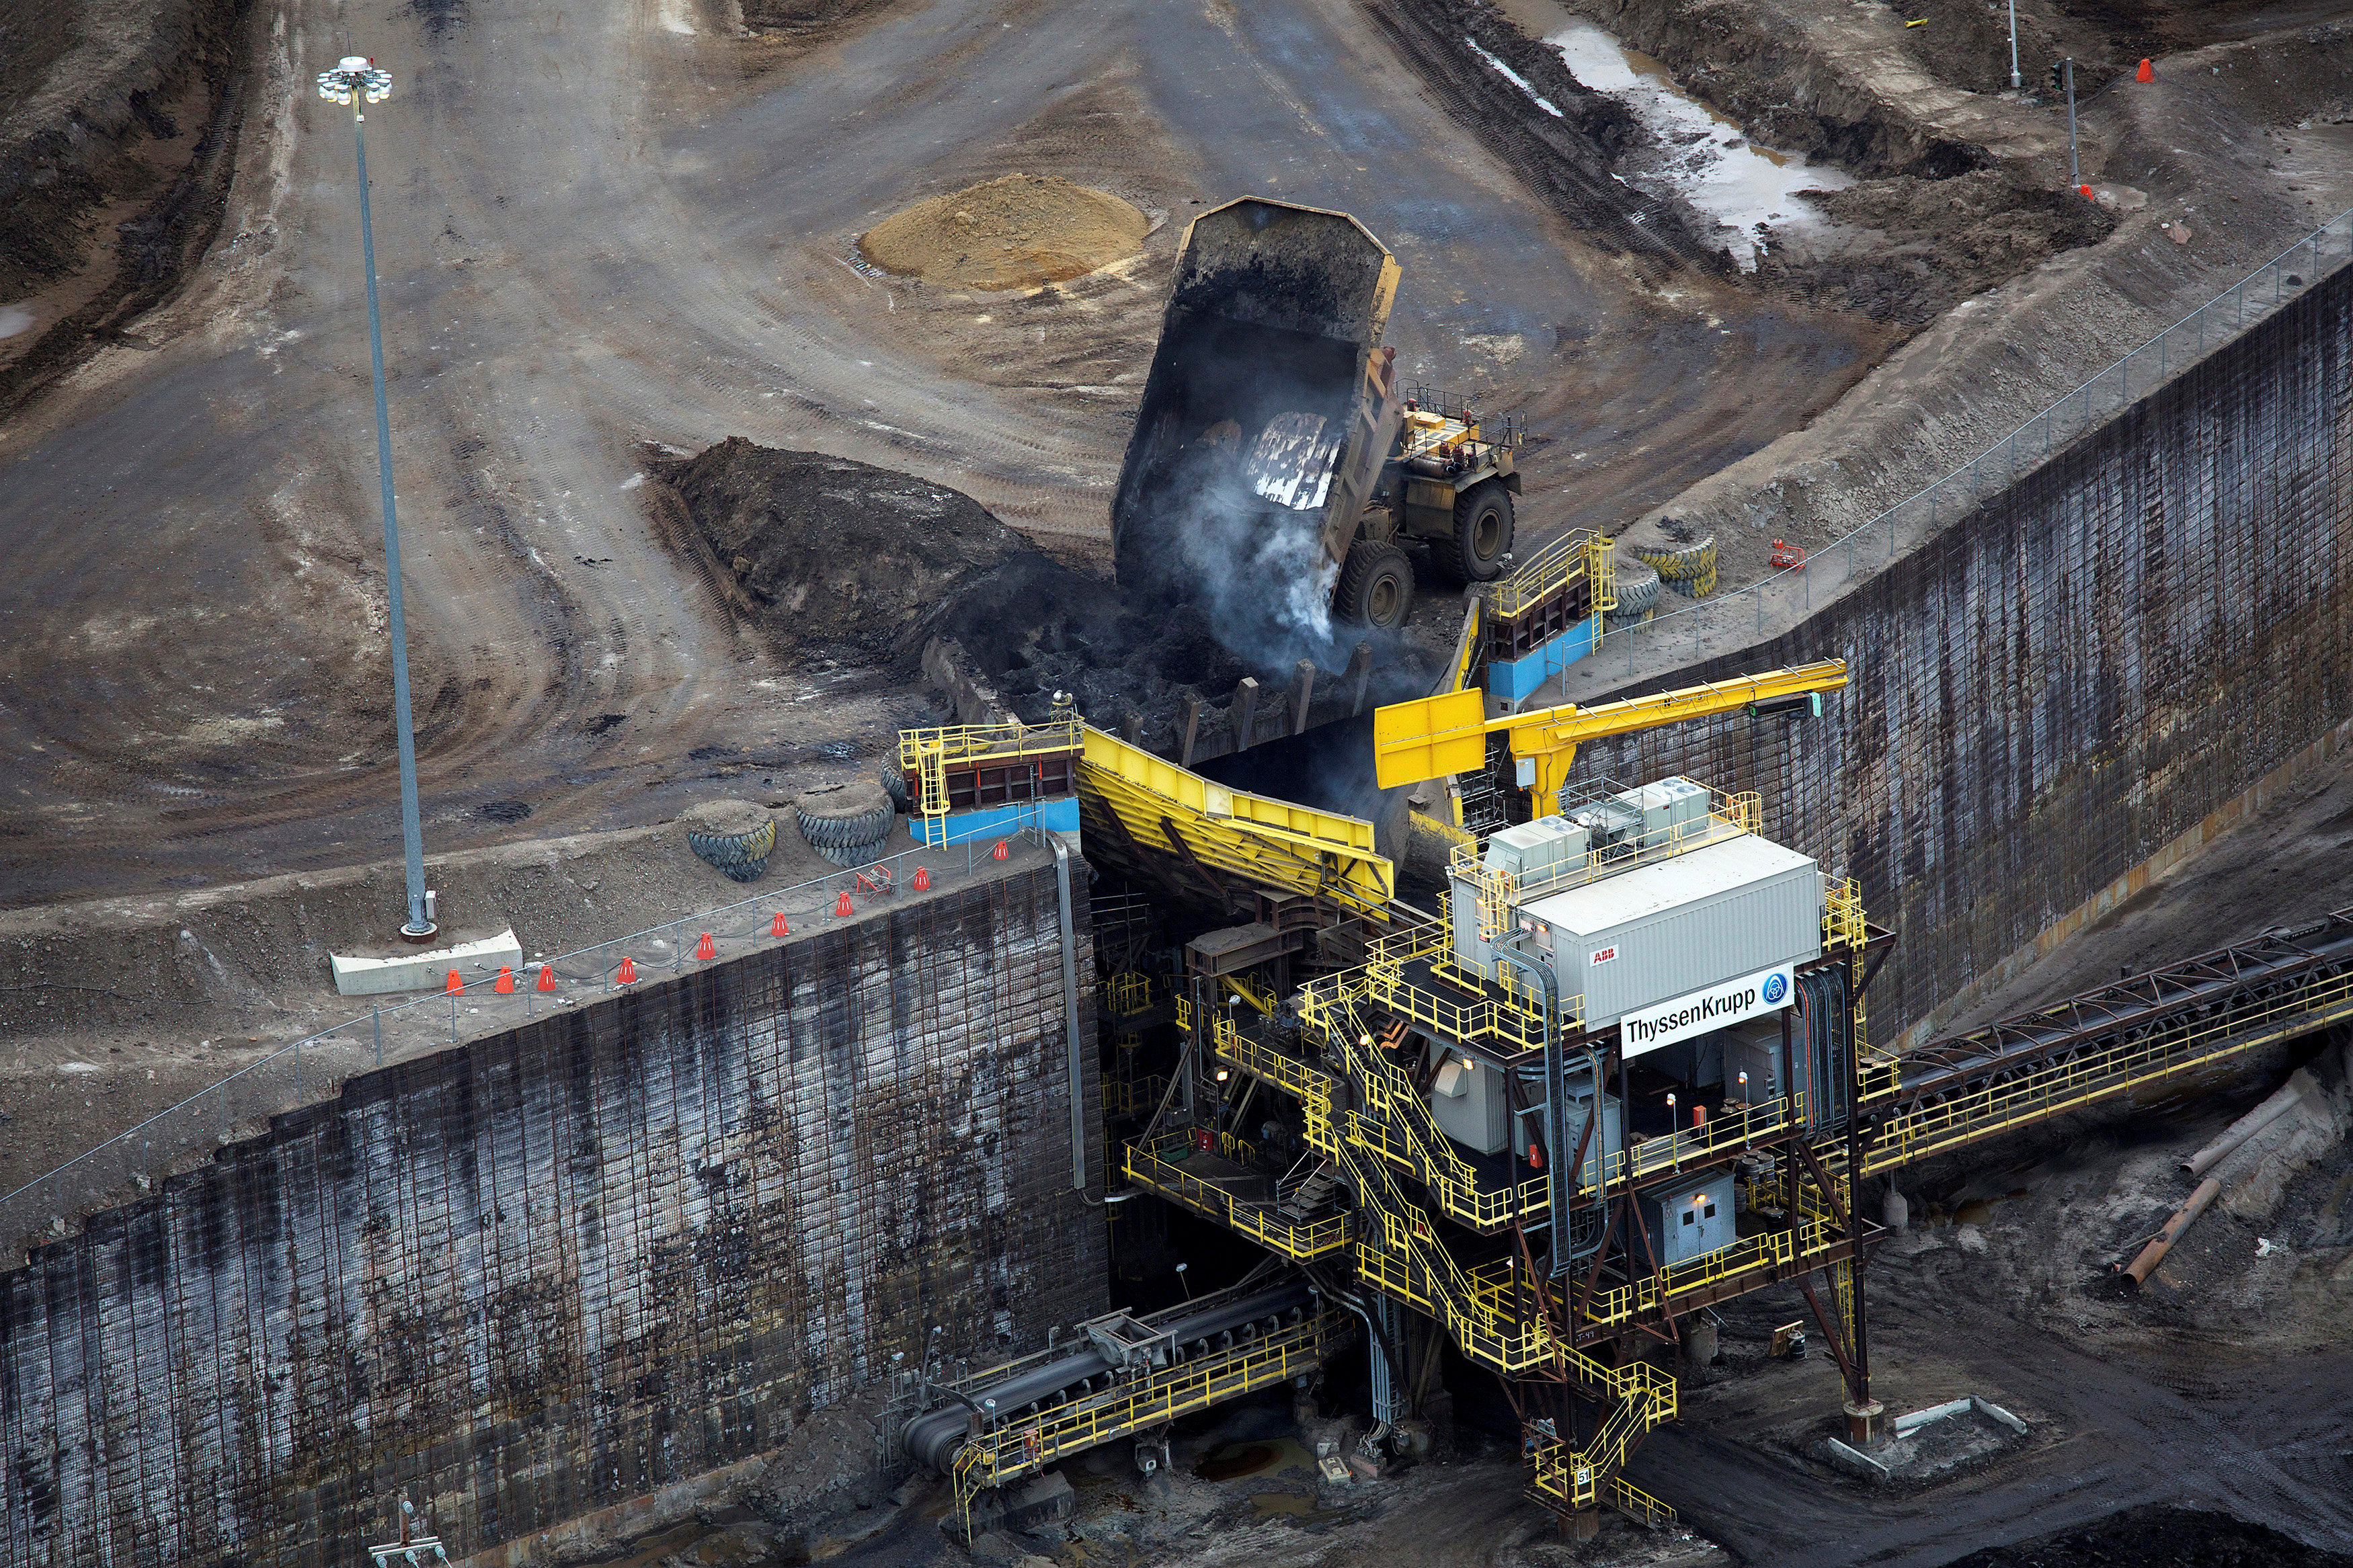 FILE PHOTO - Giant dump trucks dump raw tar sands for processing at the Suncor tar sands mining operations near Fort McMurray, Alberta, Canada on September 17, 2014. REUTERS/Todd Korol/File Photo